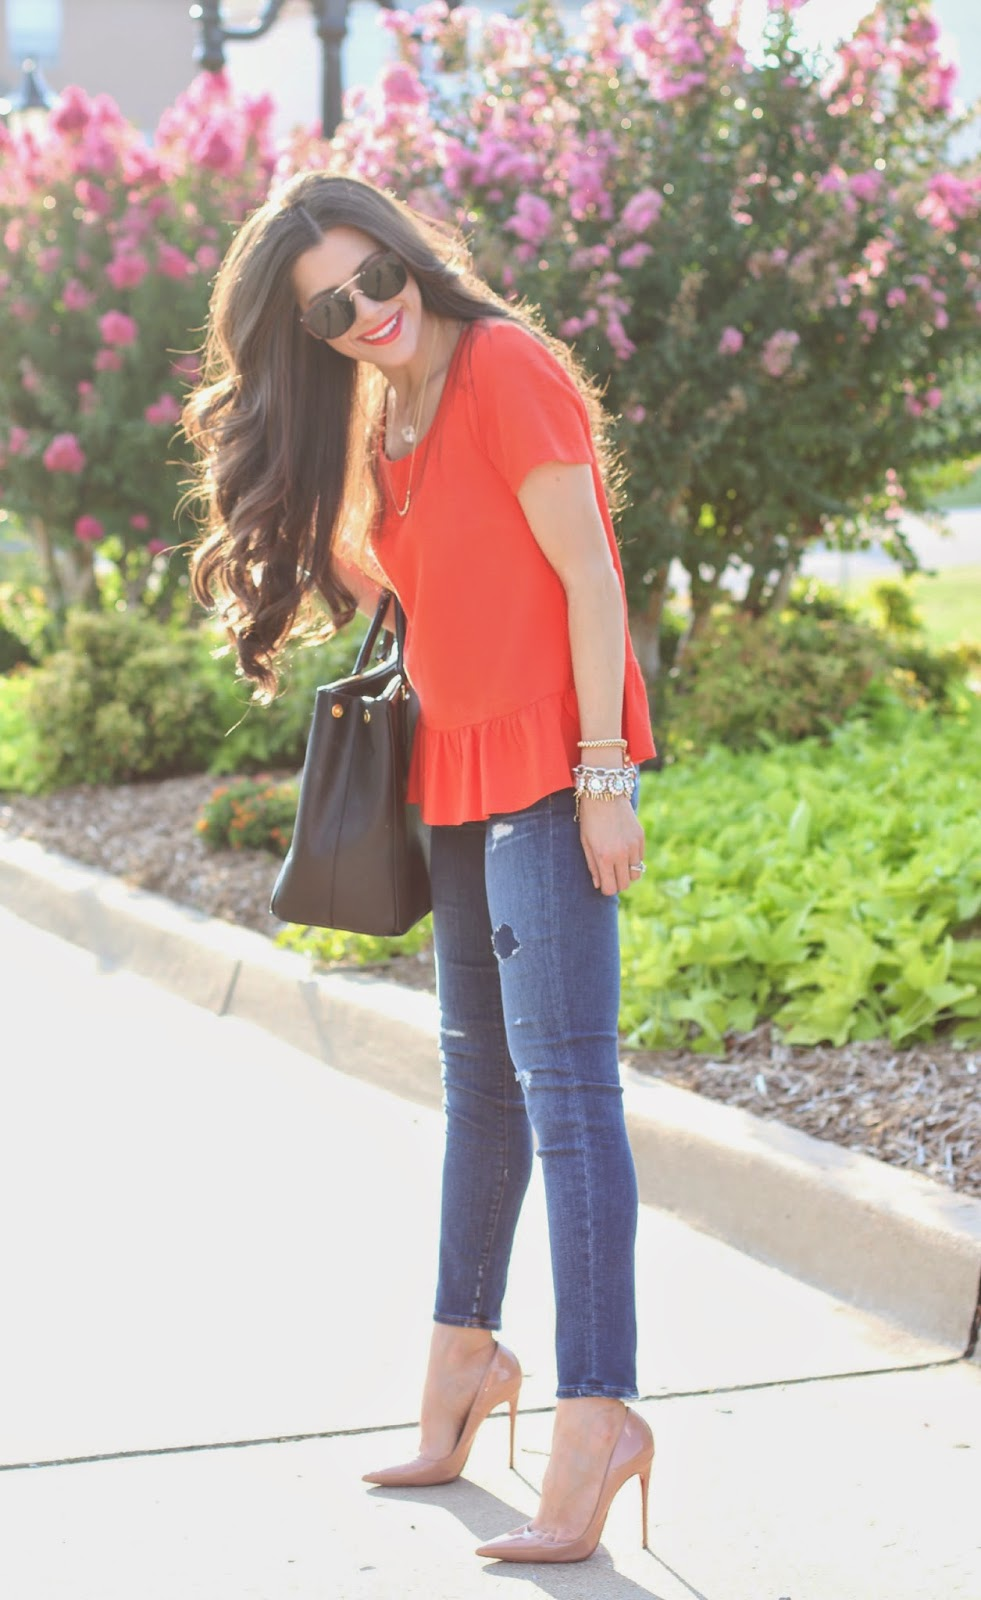 emily gemma blog, sweetest thing blog, christian louboutin so kate, nude pumps, nude louboutins, sole society sunglasses, j.crew jeans, jcrew jeans, orange ruffle top, anthropologie top, prada bag, black prada bag, black prada executive tote, nars heat wave, bauble bar necklaces